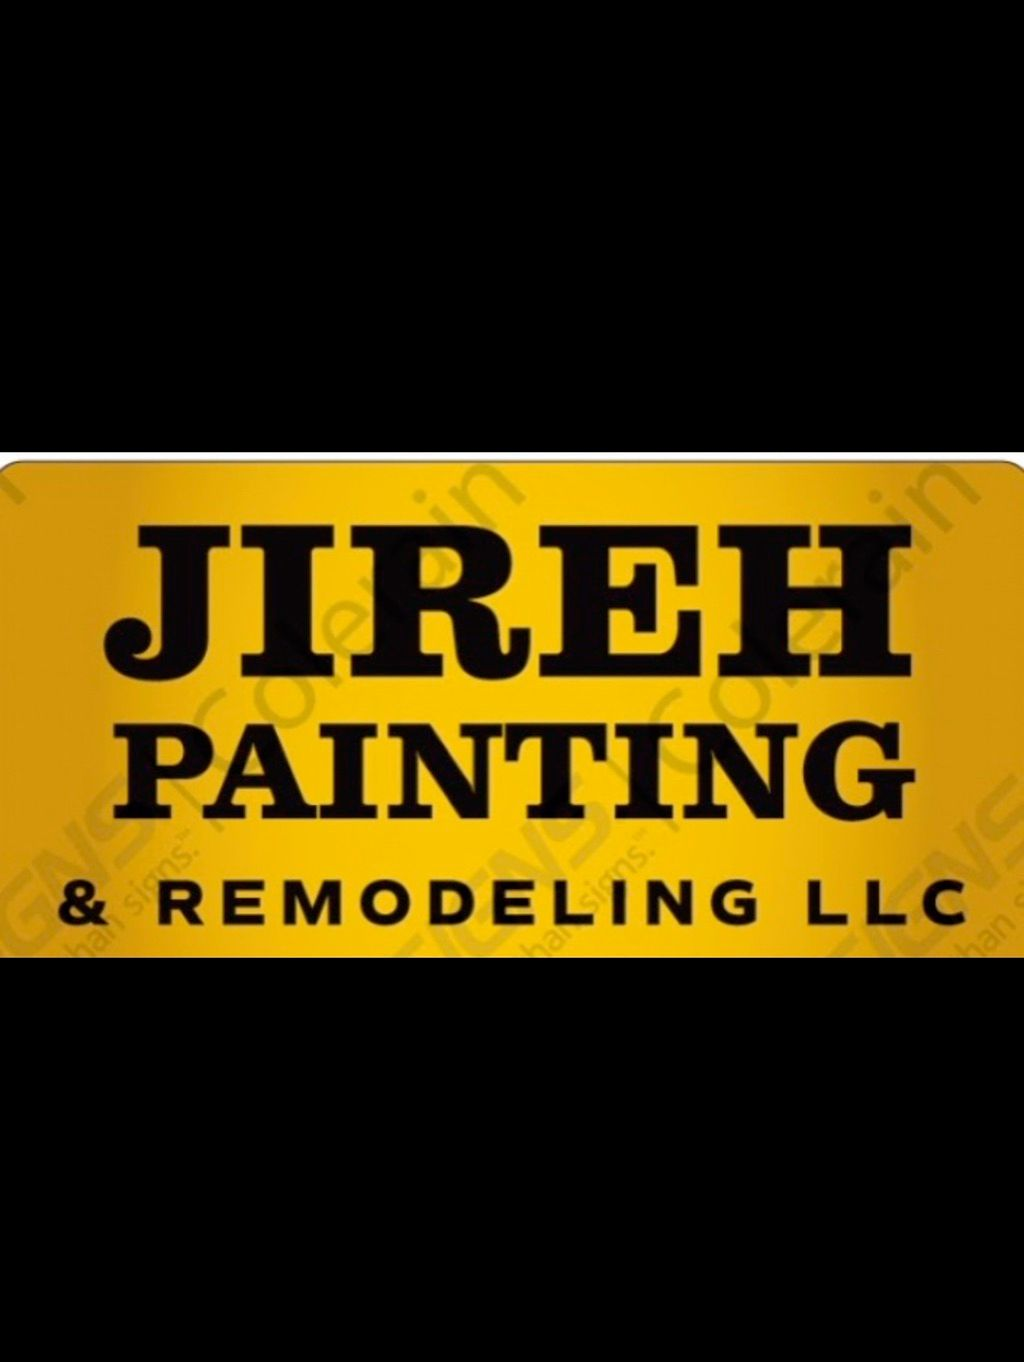 Jireh painting and remodeling LLC